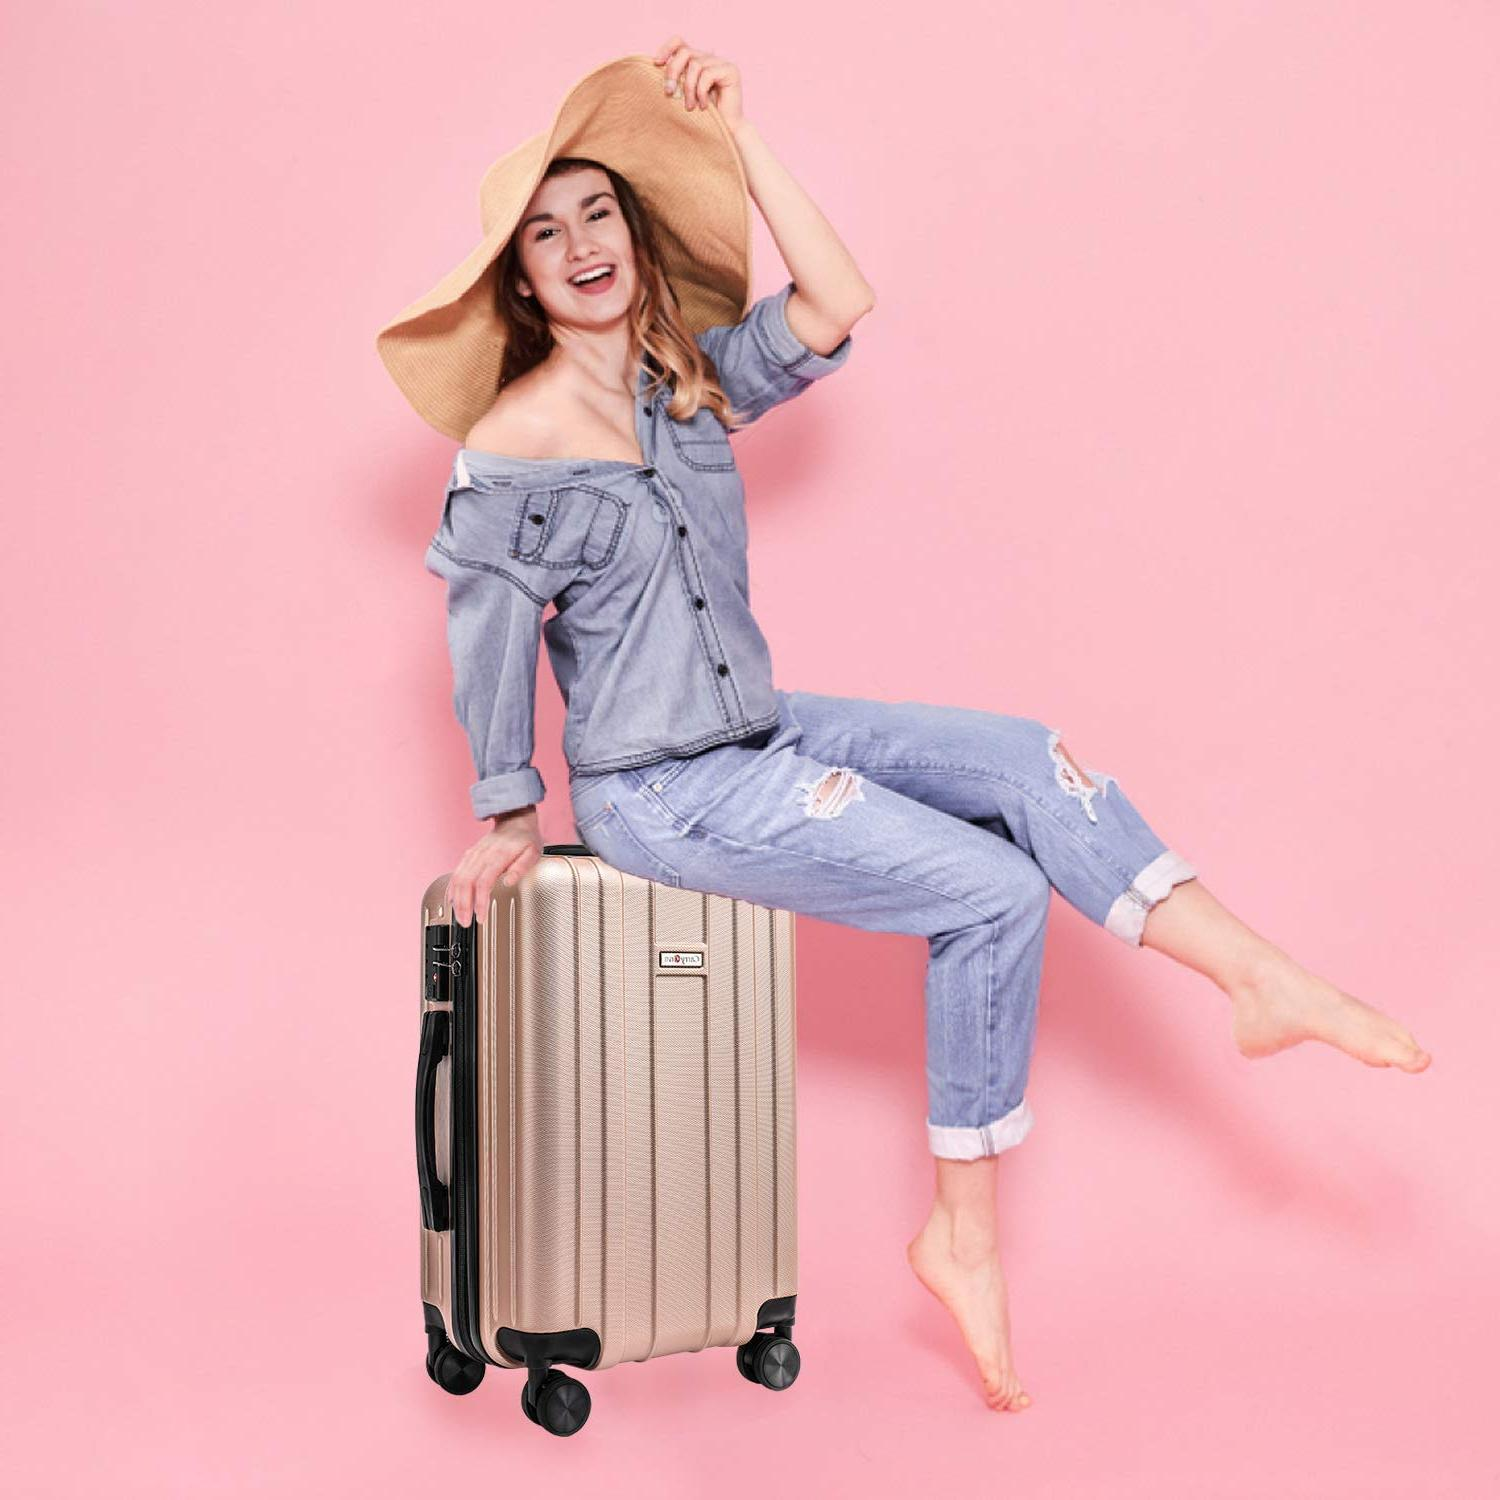 CarryOne Carry Luggage Suitcase, Built-in Lock,